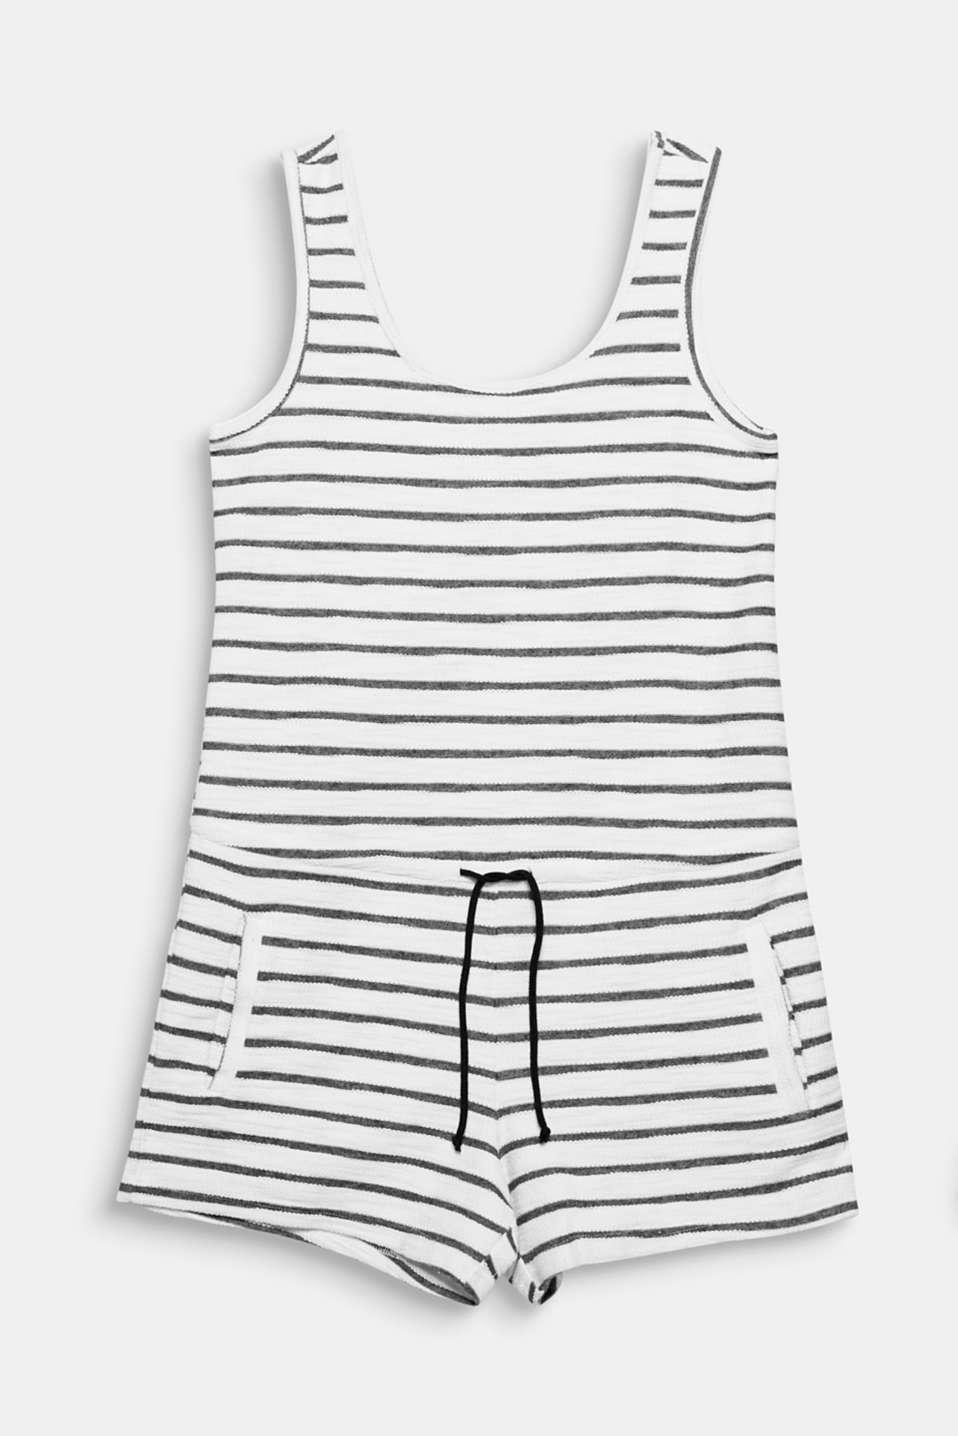 This sportily striped playsuit made of textured sweatshirt fabric is mega comfy and on in a jiffy!